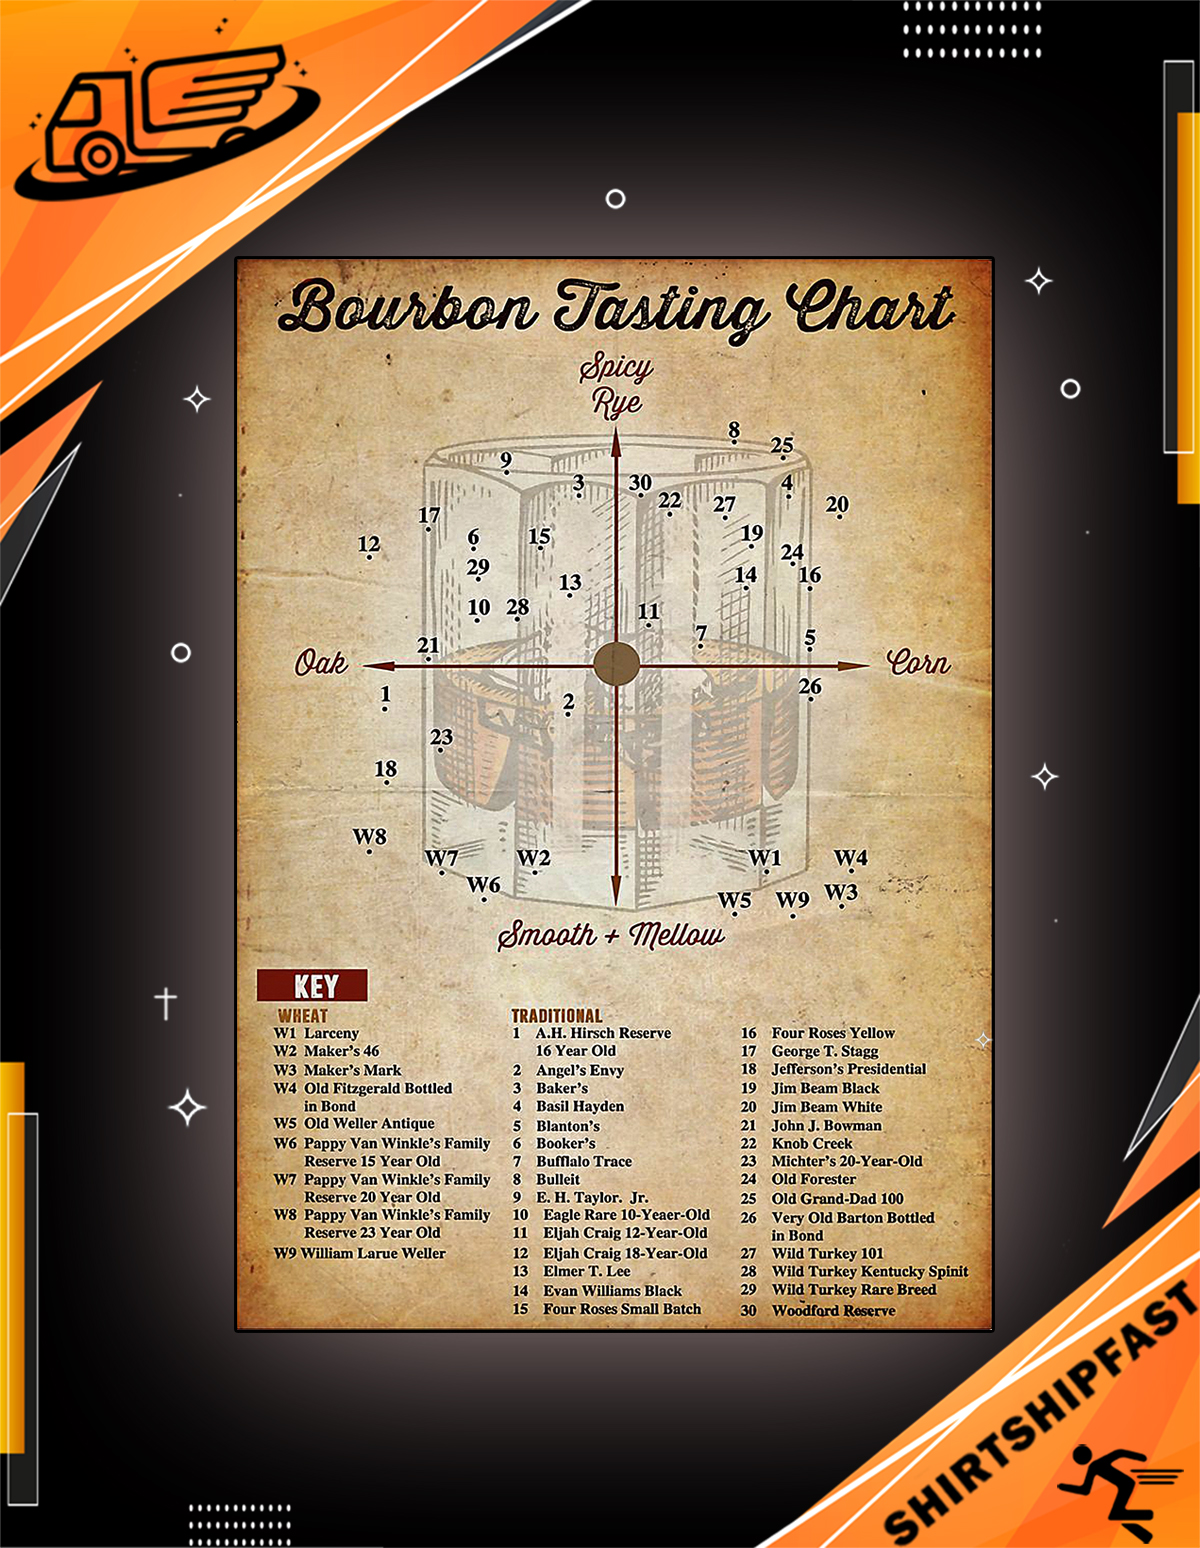 Bourbon tasting chart poster - Picture 2